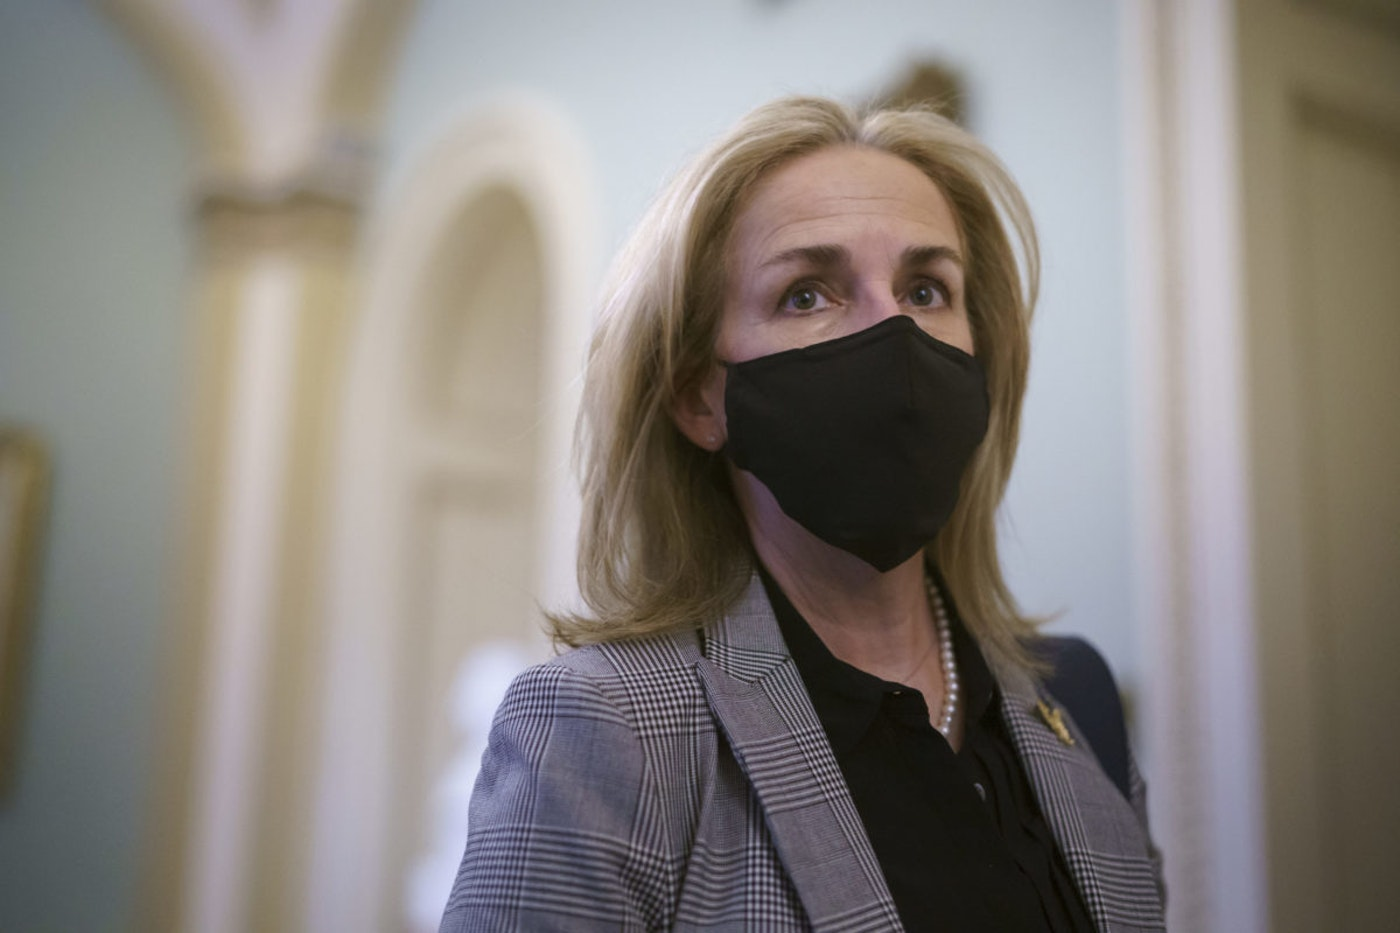 US Rep. Madeleine Dean, D-Pennsylvania, a House impeachment manager in the second impeachment trial of former President Donald Trump, departs at the close of the first day of the proceeding, at the Capitol in Washington, Tuesday, Feb. 9, 2021. (AP Photo/J. Scott Applewhite)